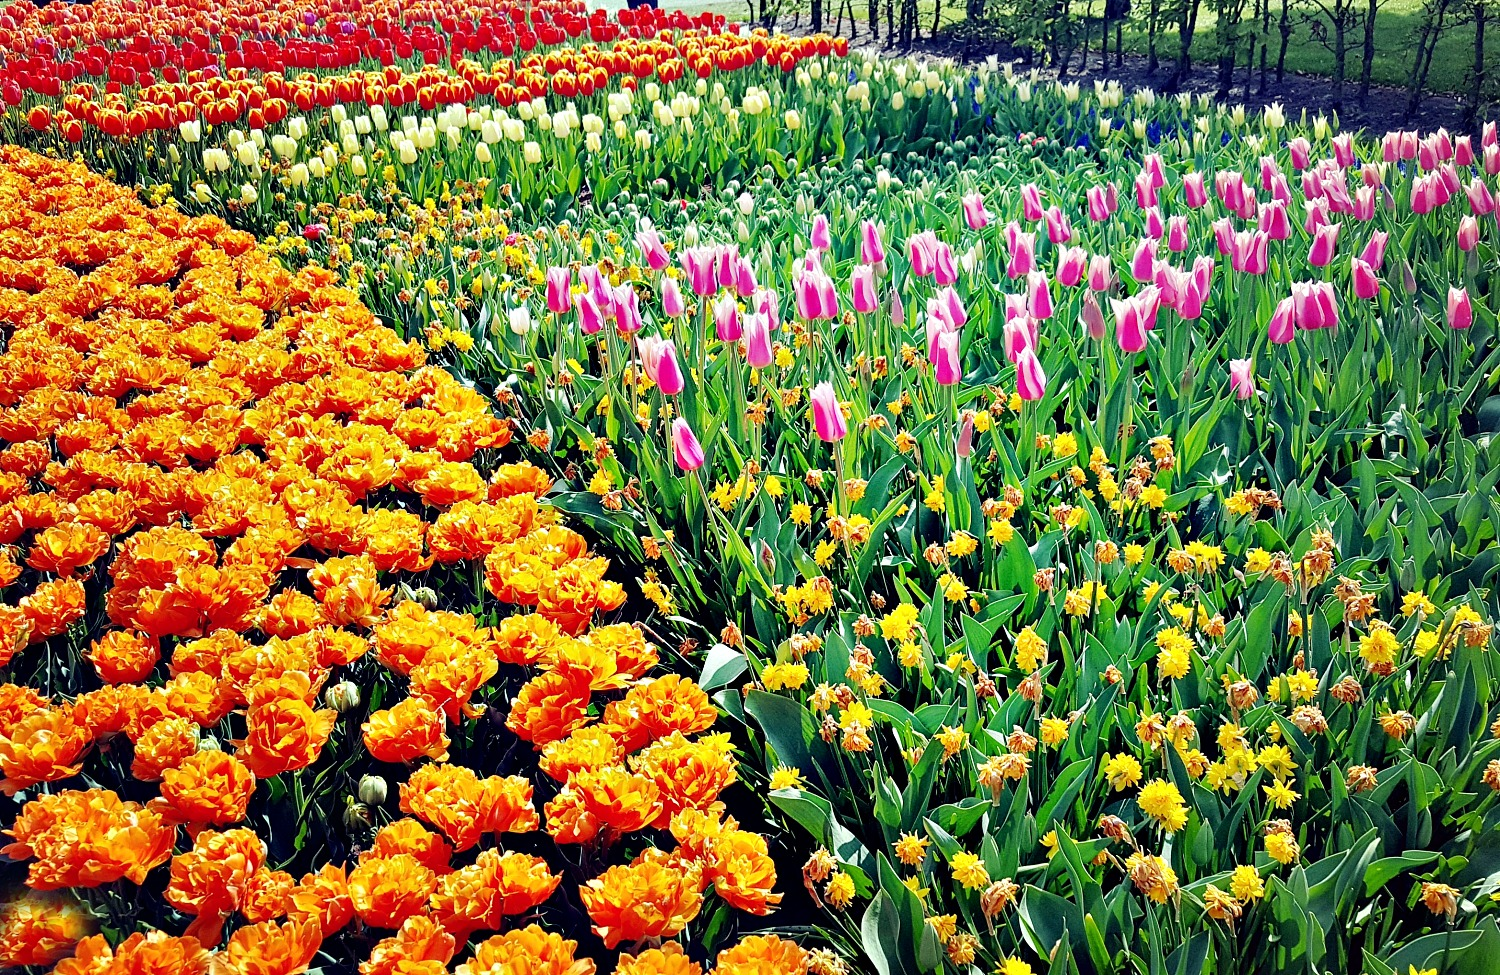 Best day trips from Amsterdam. Unimaginable variety of tulips at Keukenhof Gardens.